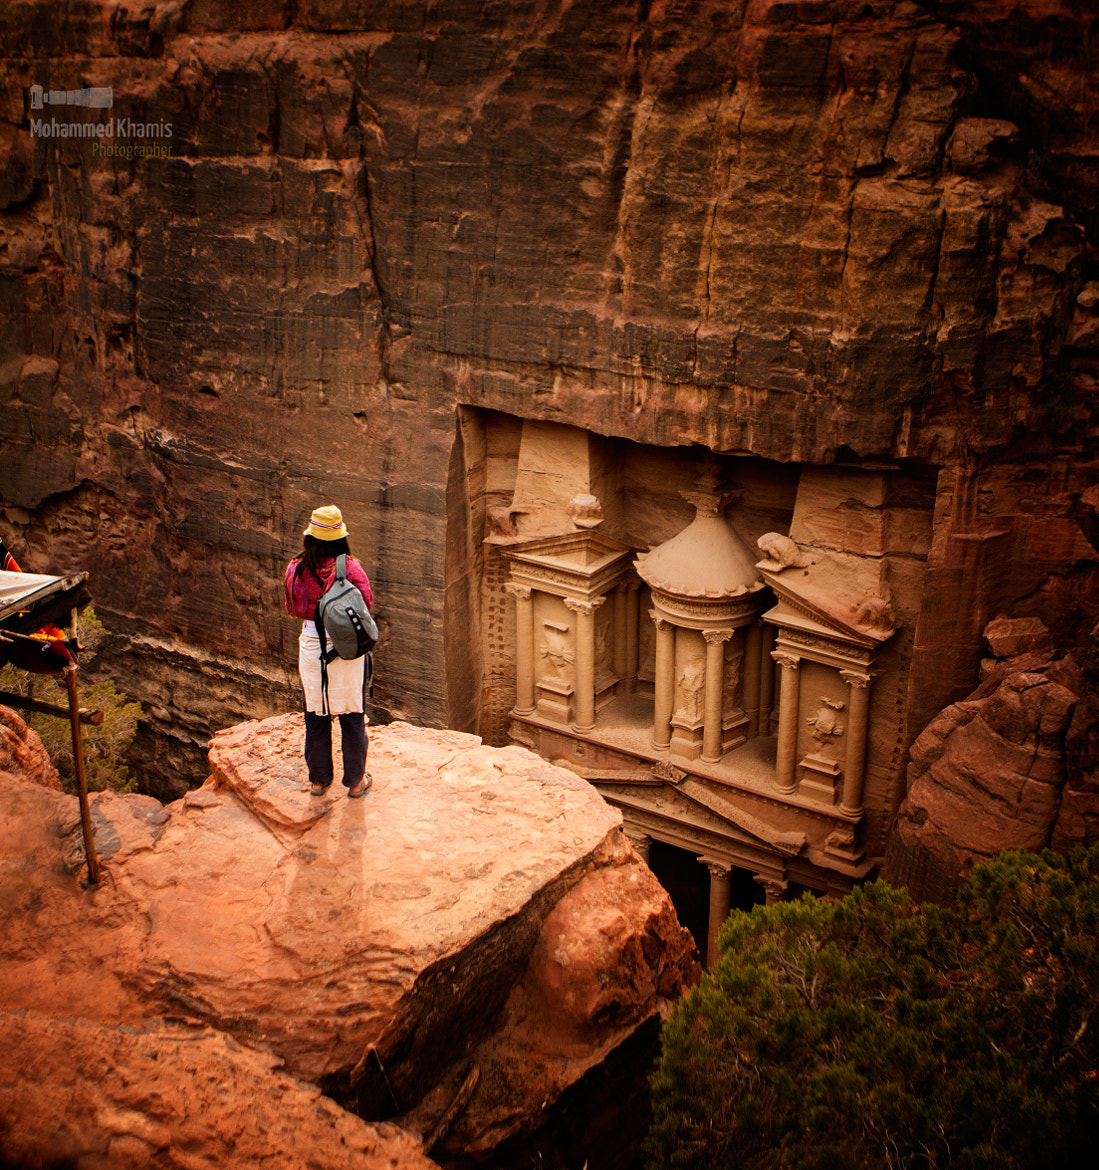 Photograph Petra - Jordan by MOHAMMED KHAMIS on 500px